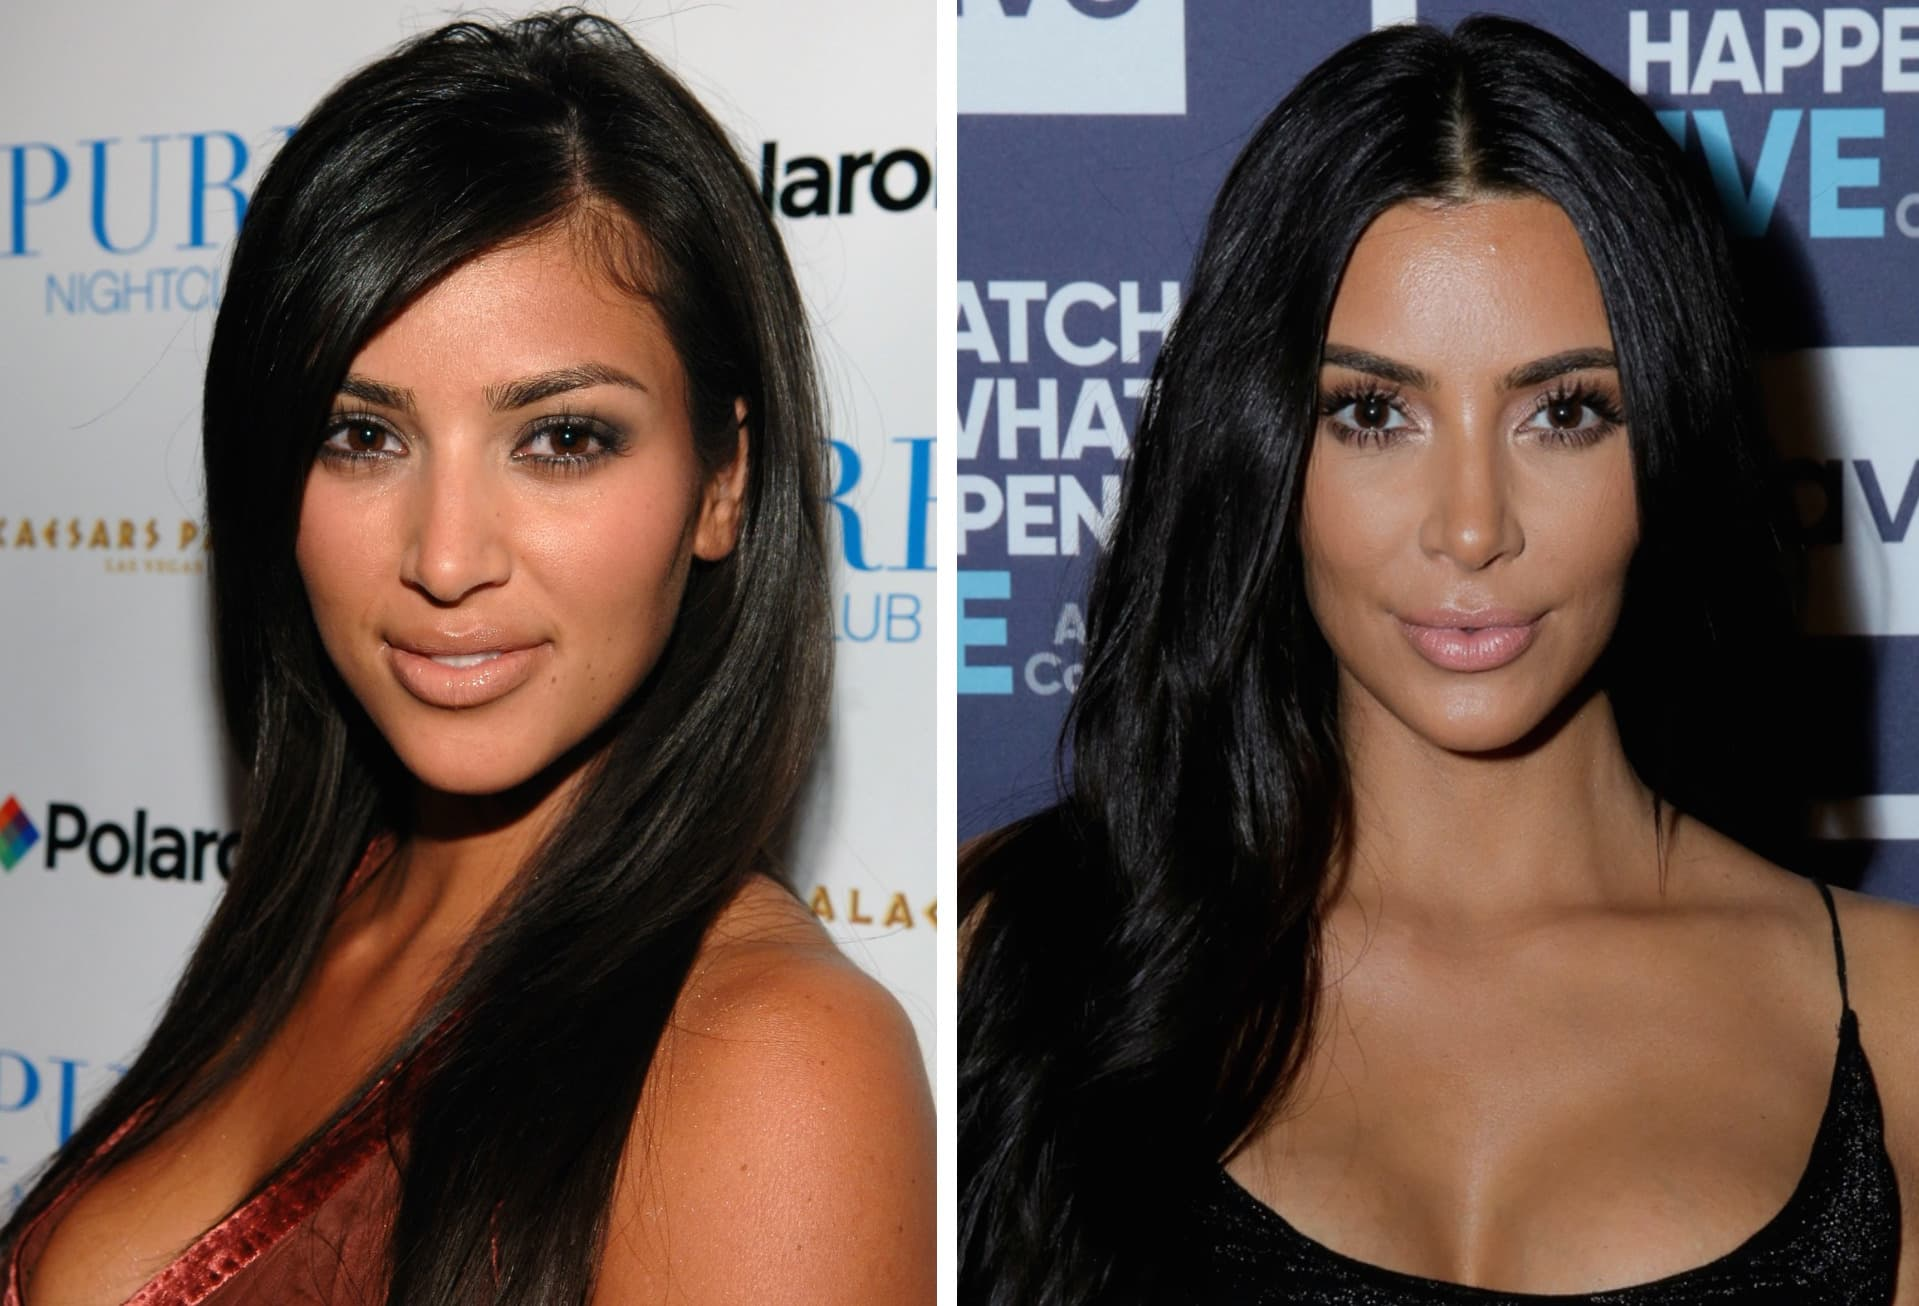 The Kim Kardashian Family Before And After Plastic Surgery 1